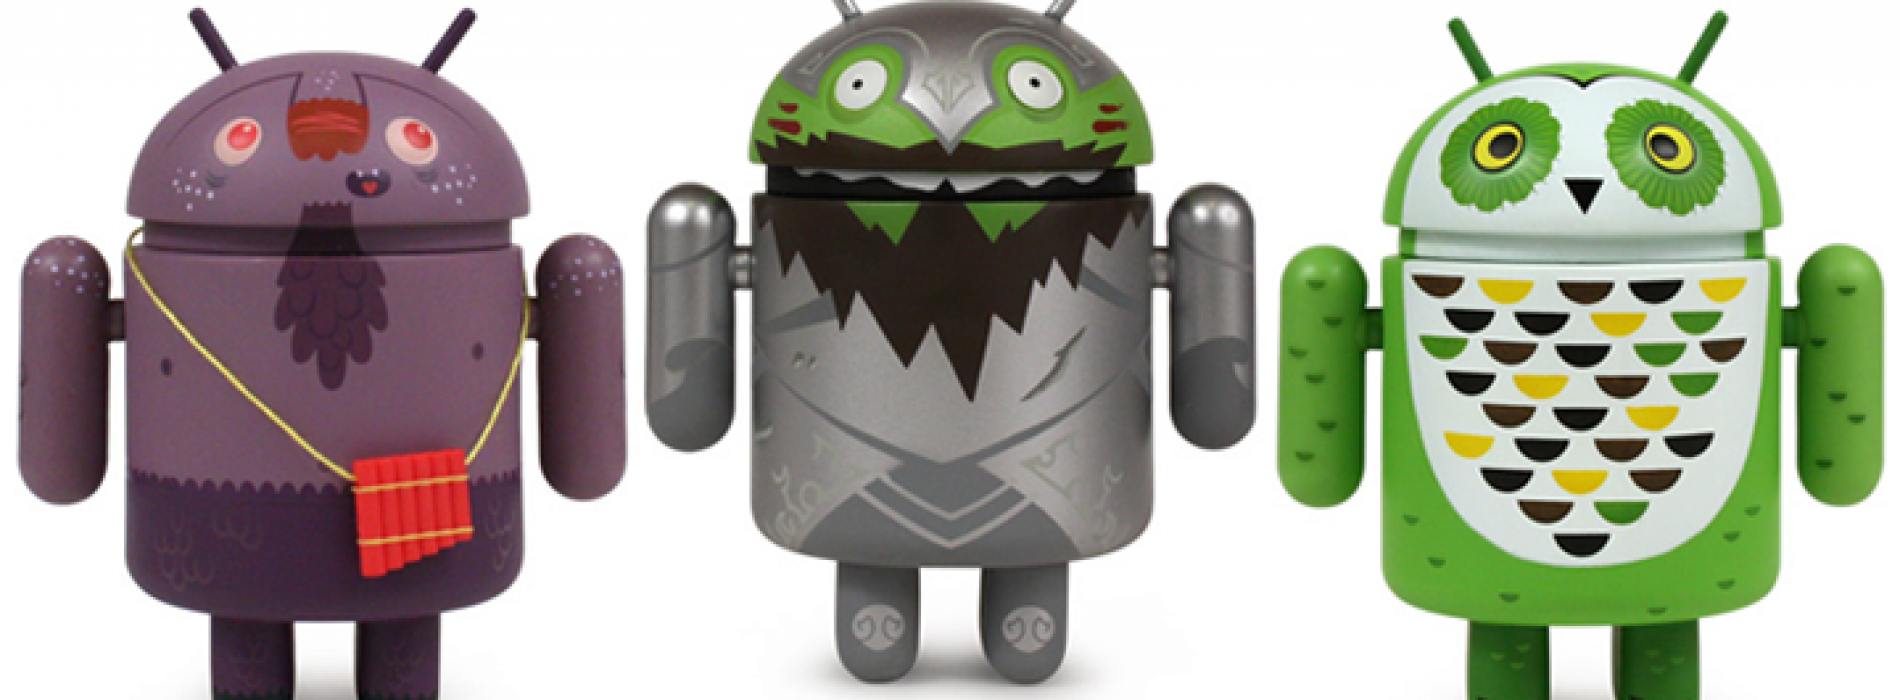 Dyzplastic intros Series 3's Pandroid, Sir Knightly Bild, and Whoogle the Owl